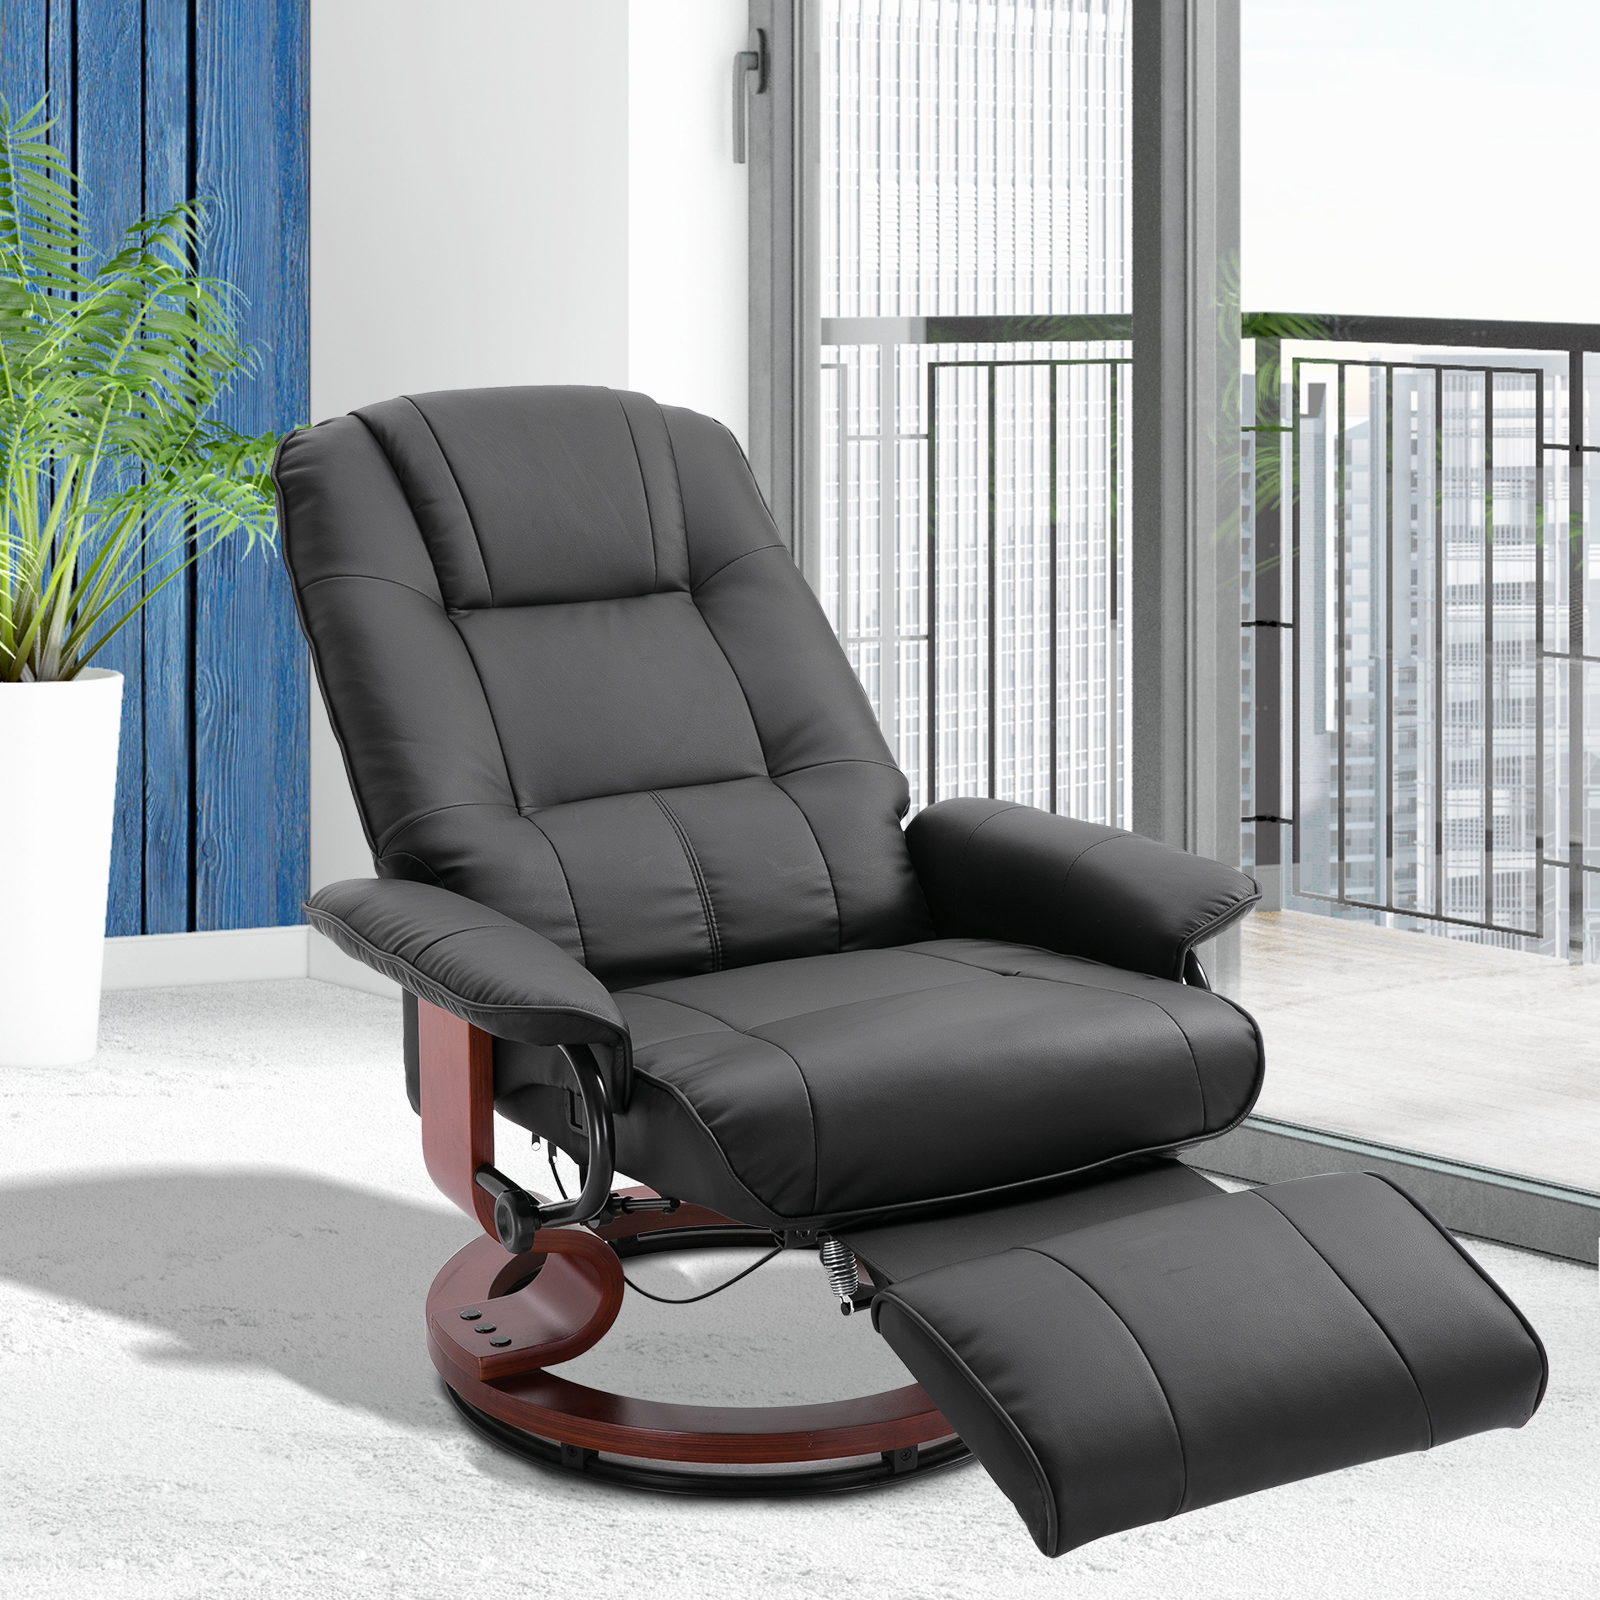 Swivel Recliner Chairs Details About Faux Leather Adjustable Traditional Manual Swivel Recliner Chair Ottoman Black